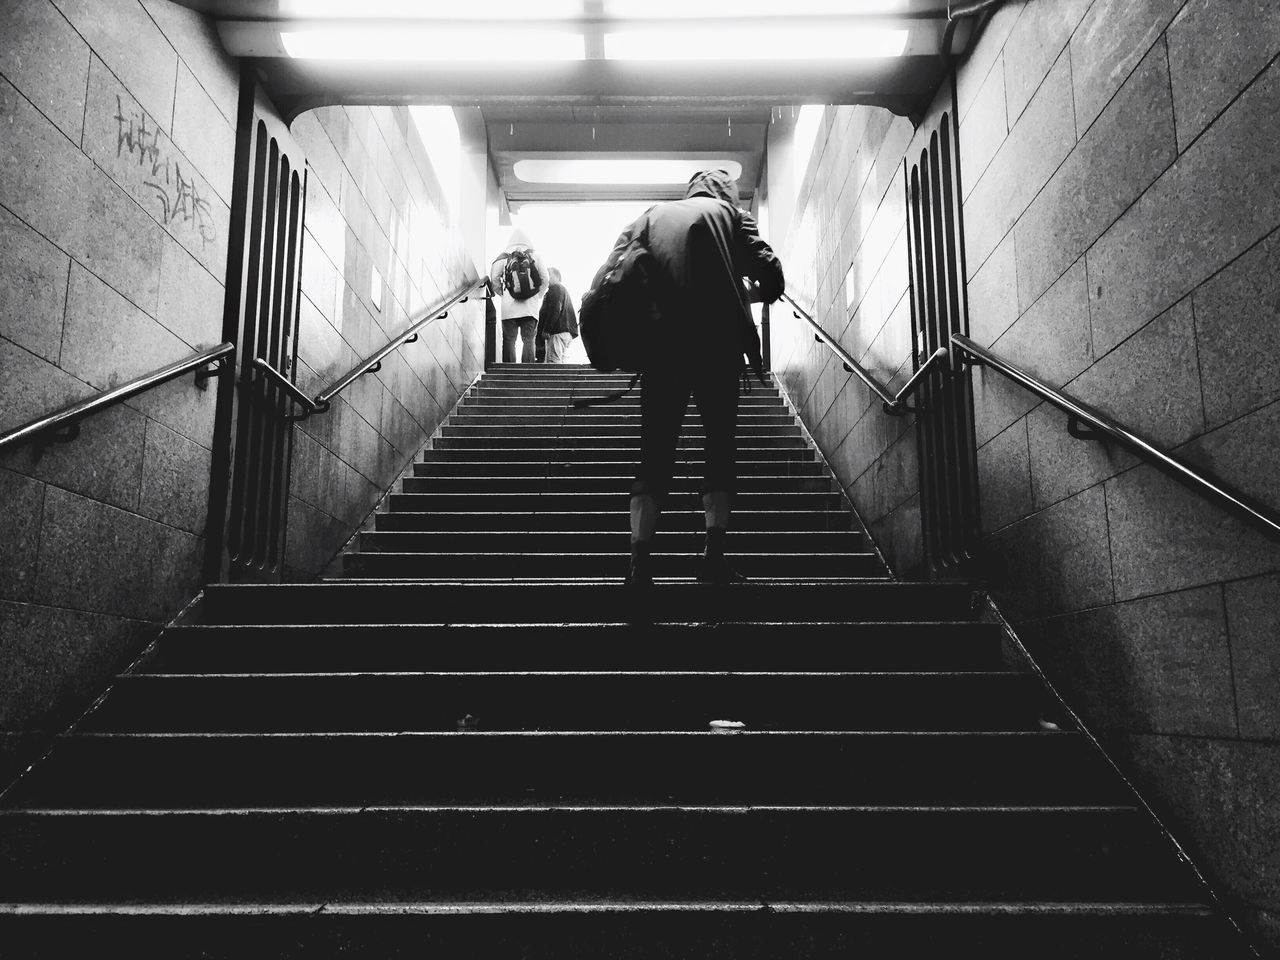 Staircase Steps Steps And Staircases Stairs Walking Lifestyles Stairs Men Architecture Illuminated Urban Underground Underground Station  Dark Darkness And Light Moody Rain Depressed Indoors  Low Angle View Berlin Black And White Blackandwhite Black & White One Person EyeEm Selects Let's Go. Together.